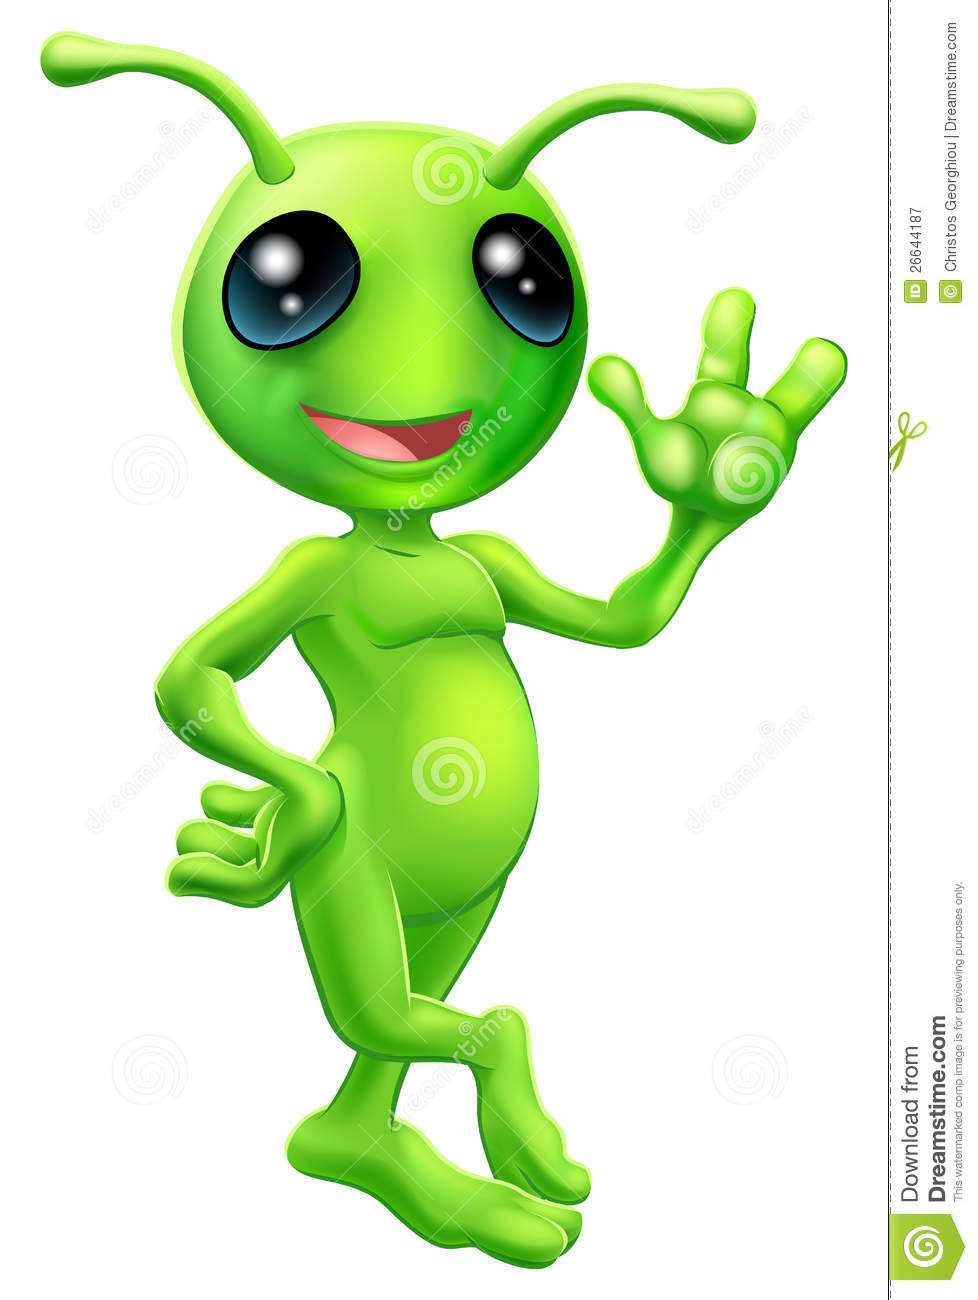 ... little green man alien mascot with antennae smiling and waving